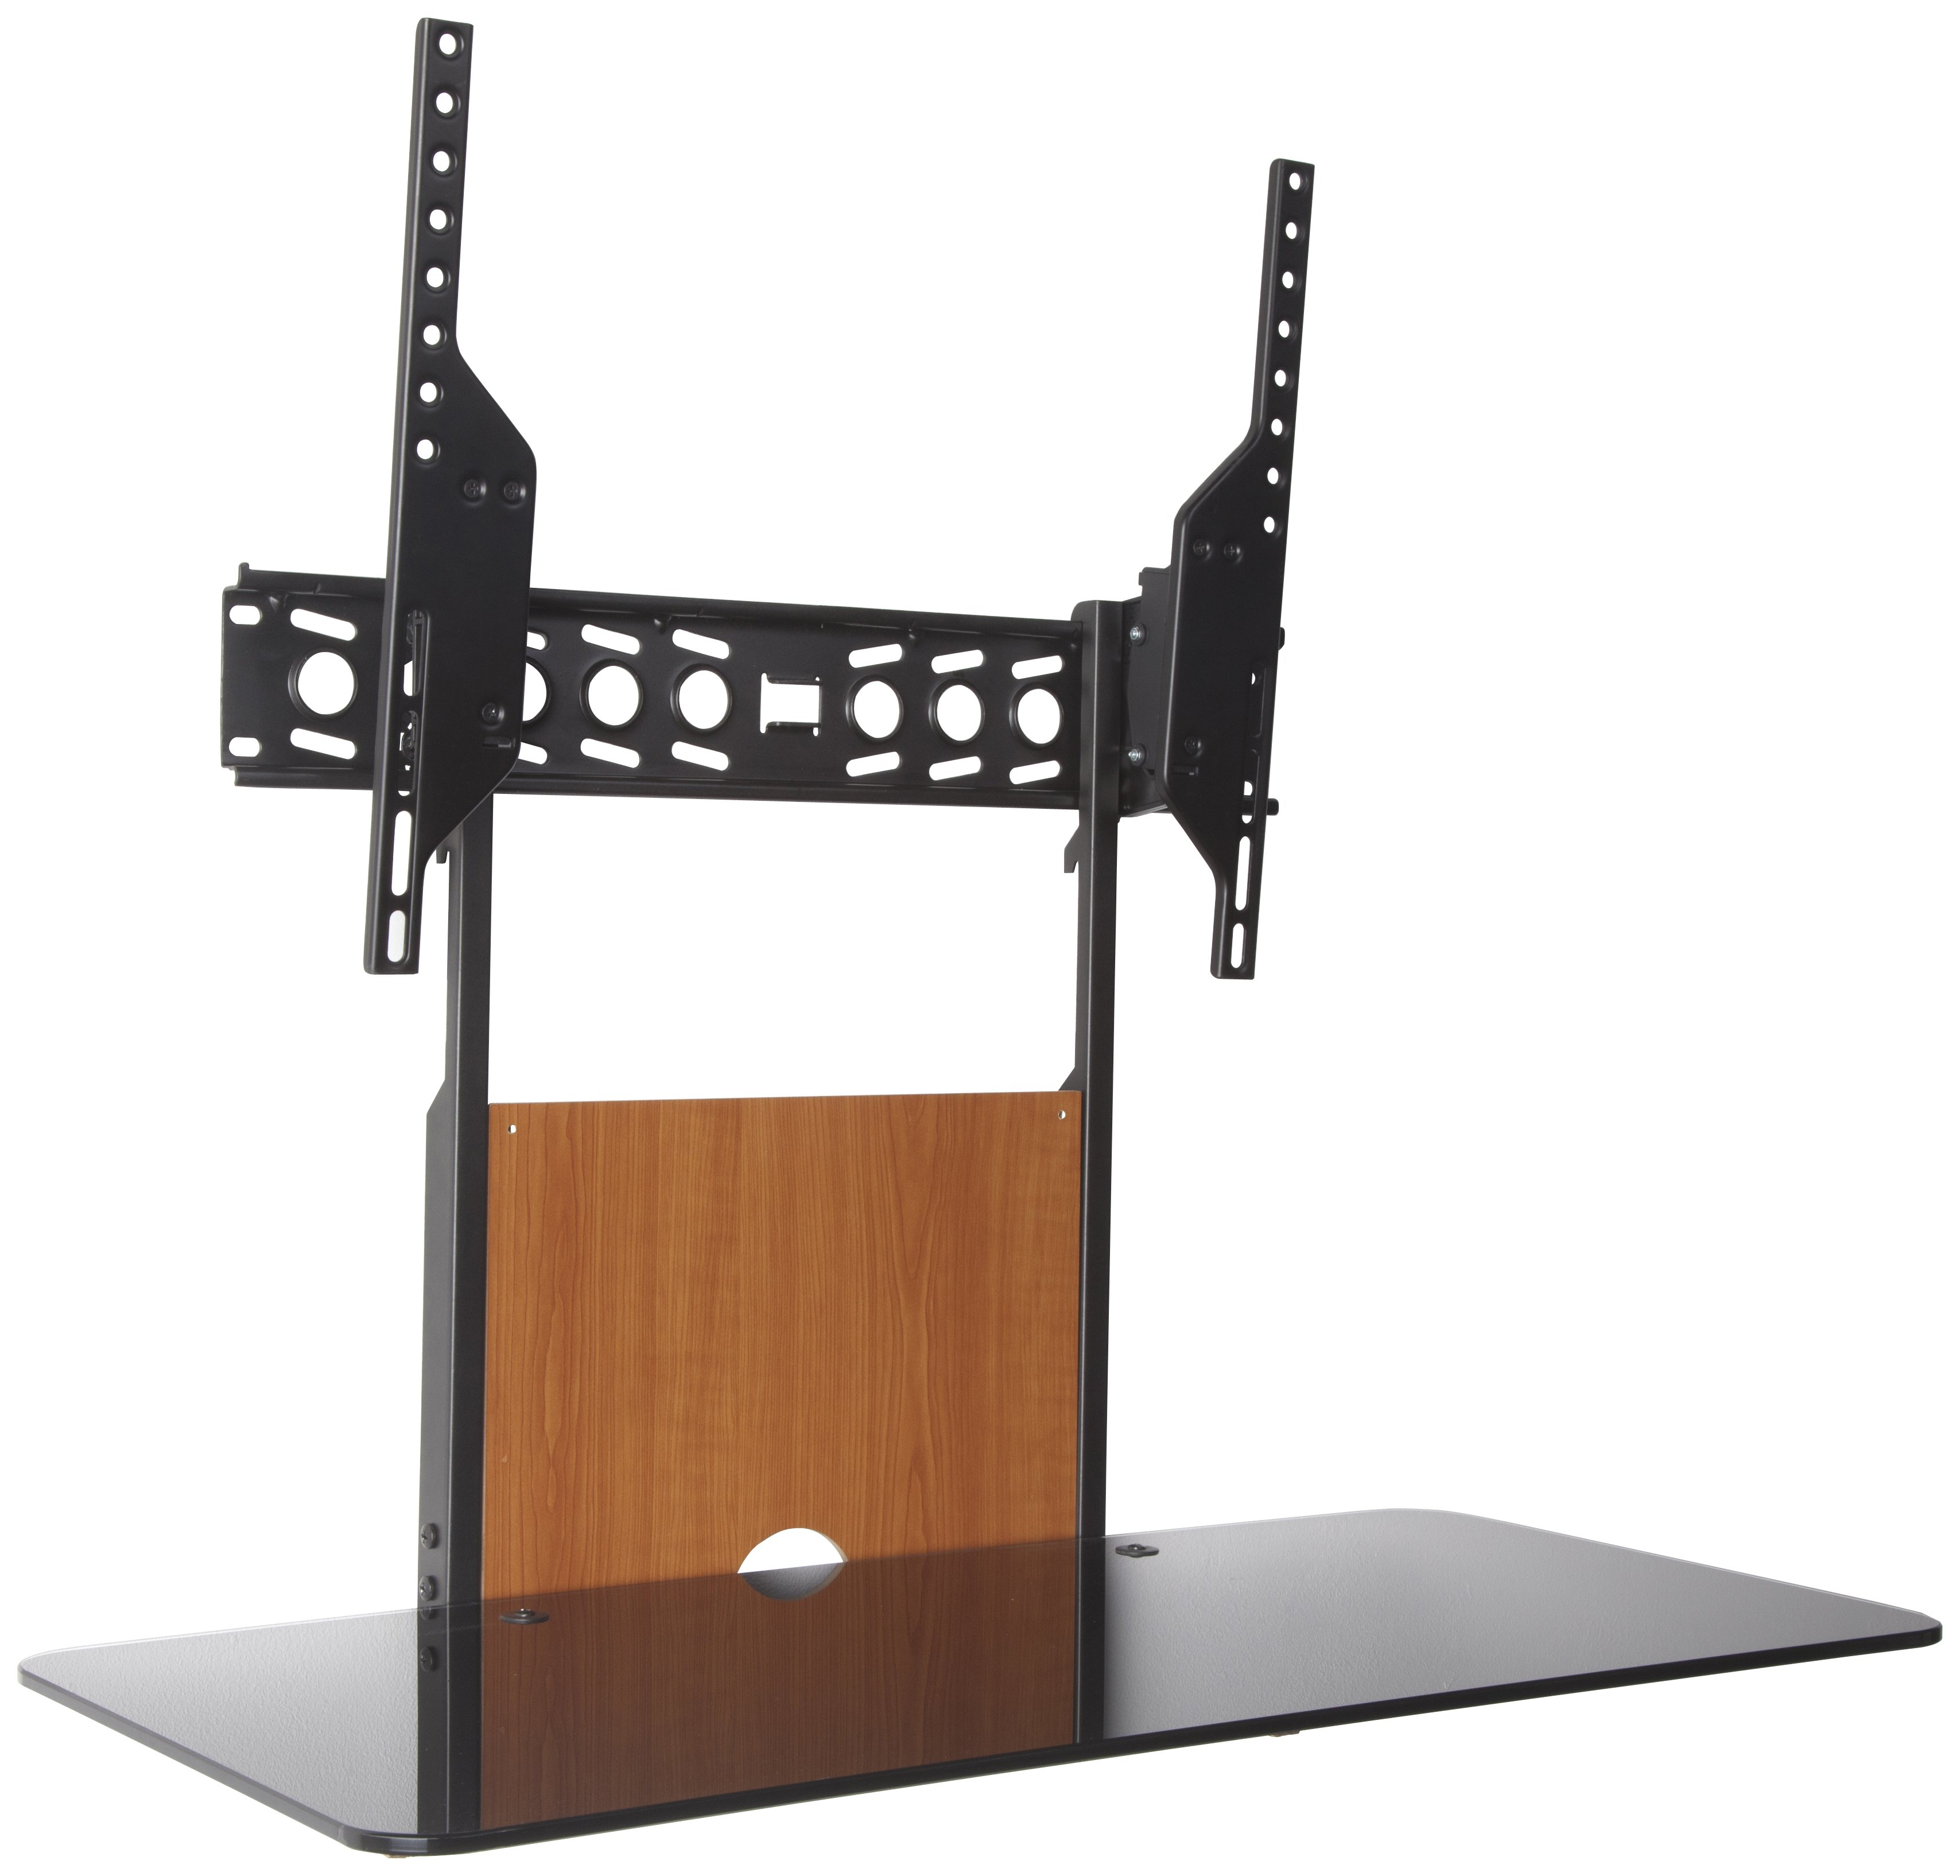 Image of AVF Ultimate All in One TV Mounting System.